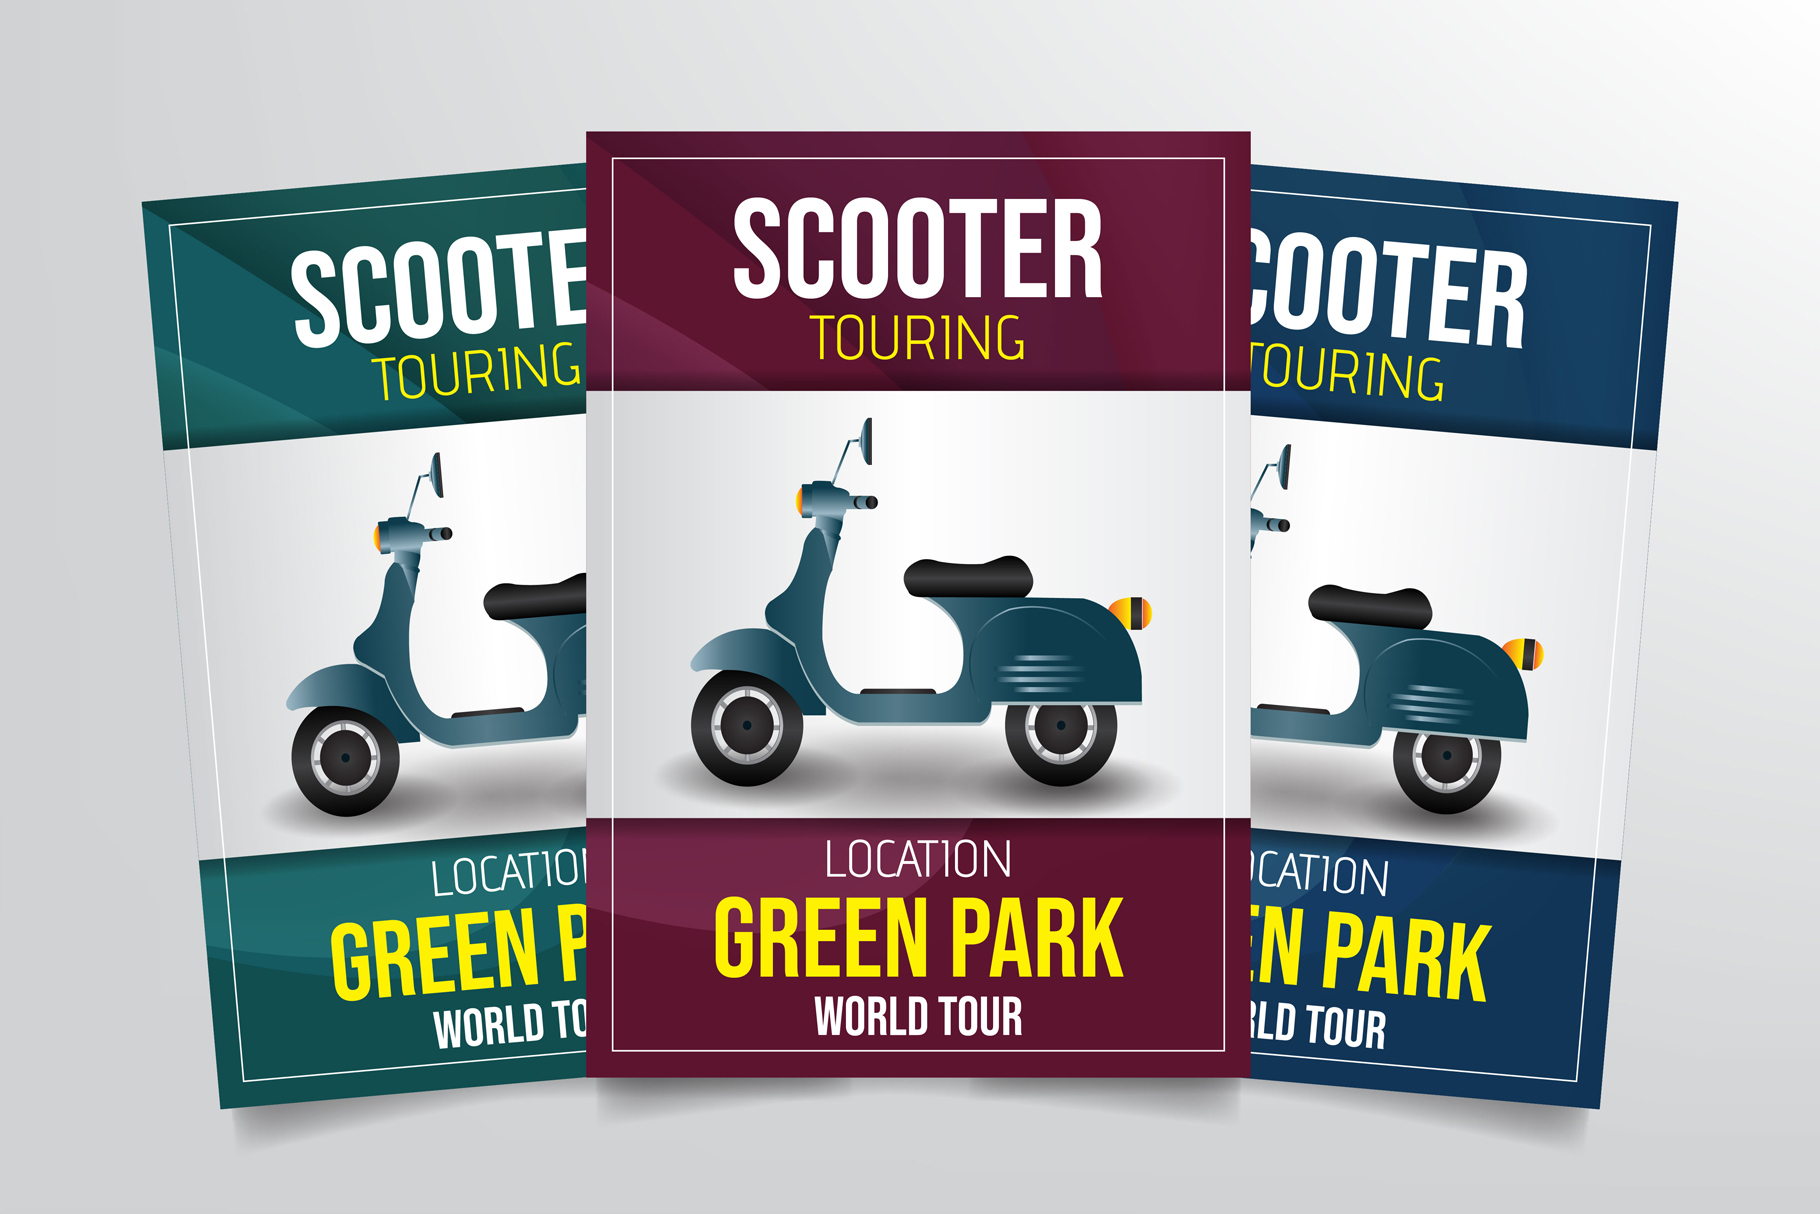 Scooter Touring Flyer Template example image 1